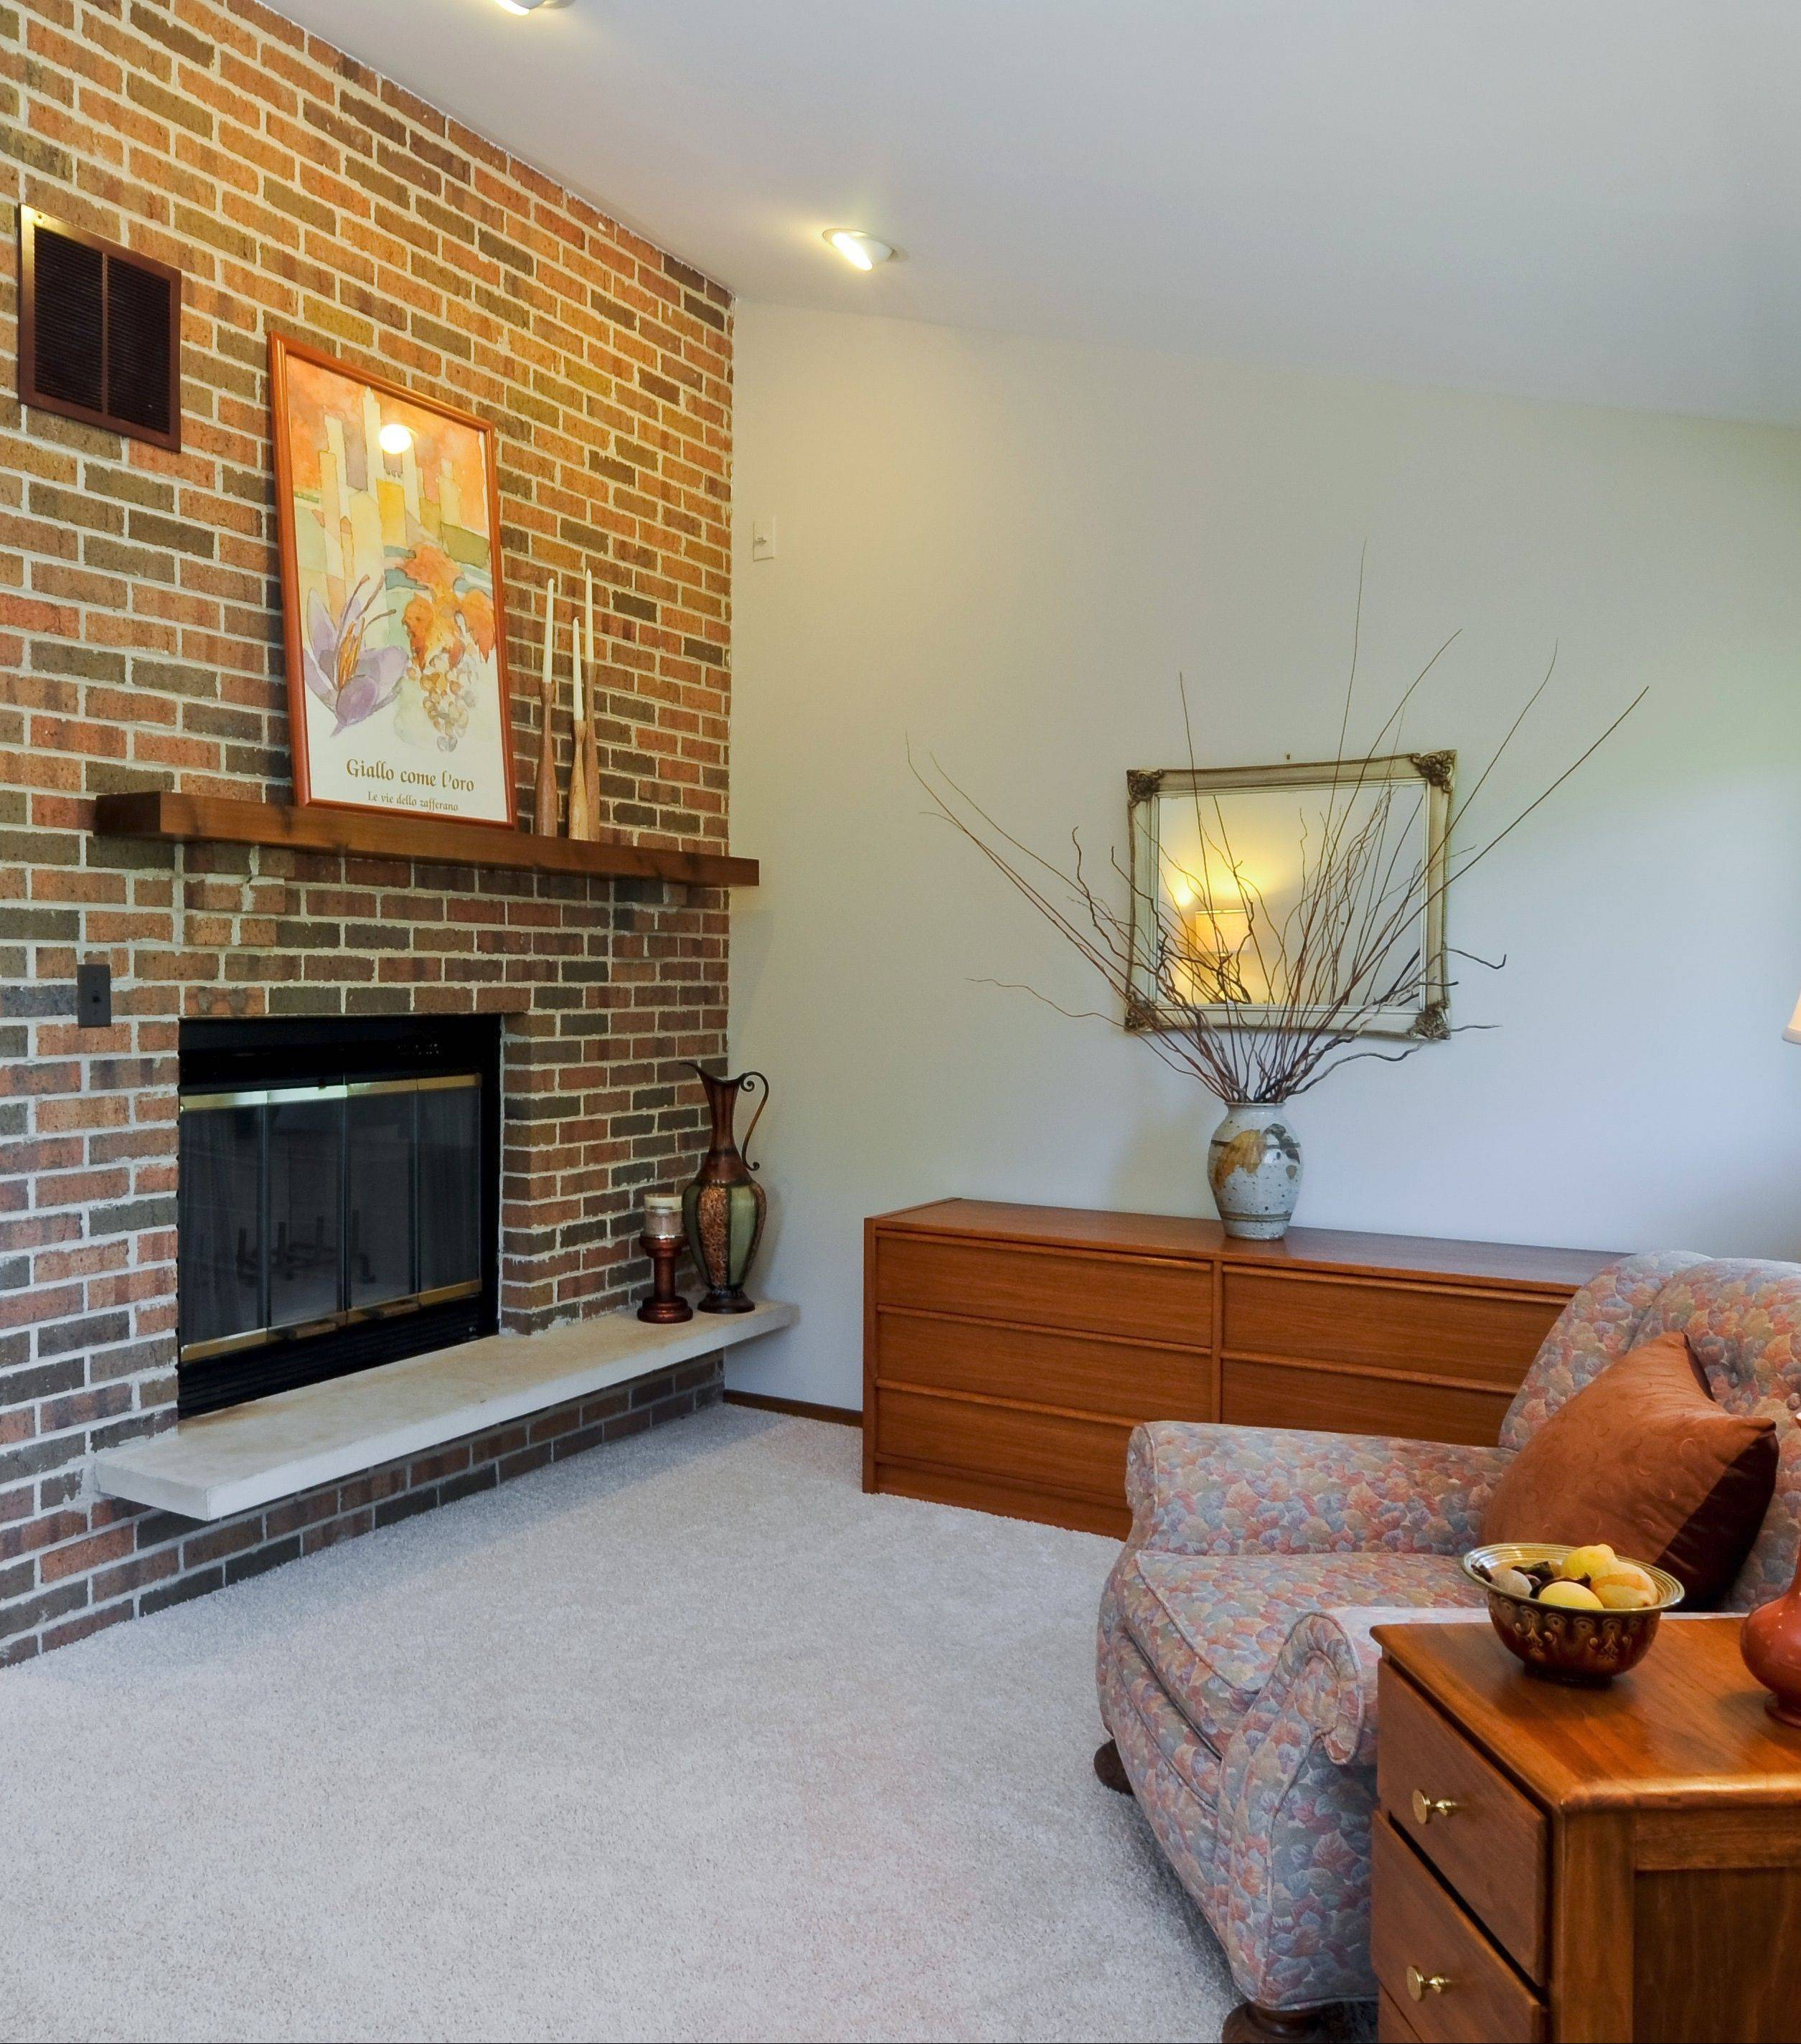 The fireplace area in the master bedroom was depersonalized and decluttered so any of the perspective buyers could picture their lives in this house.